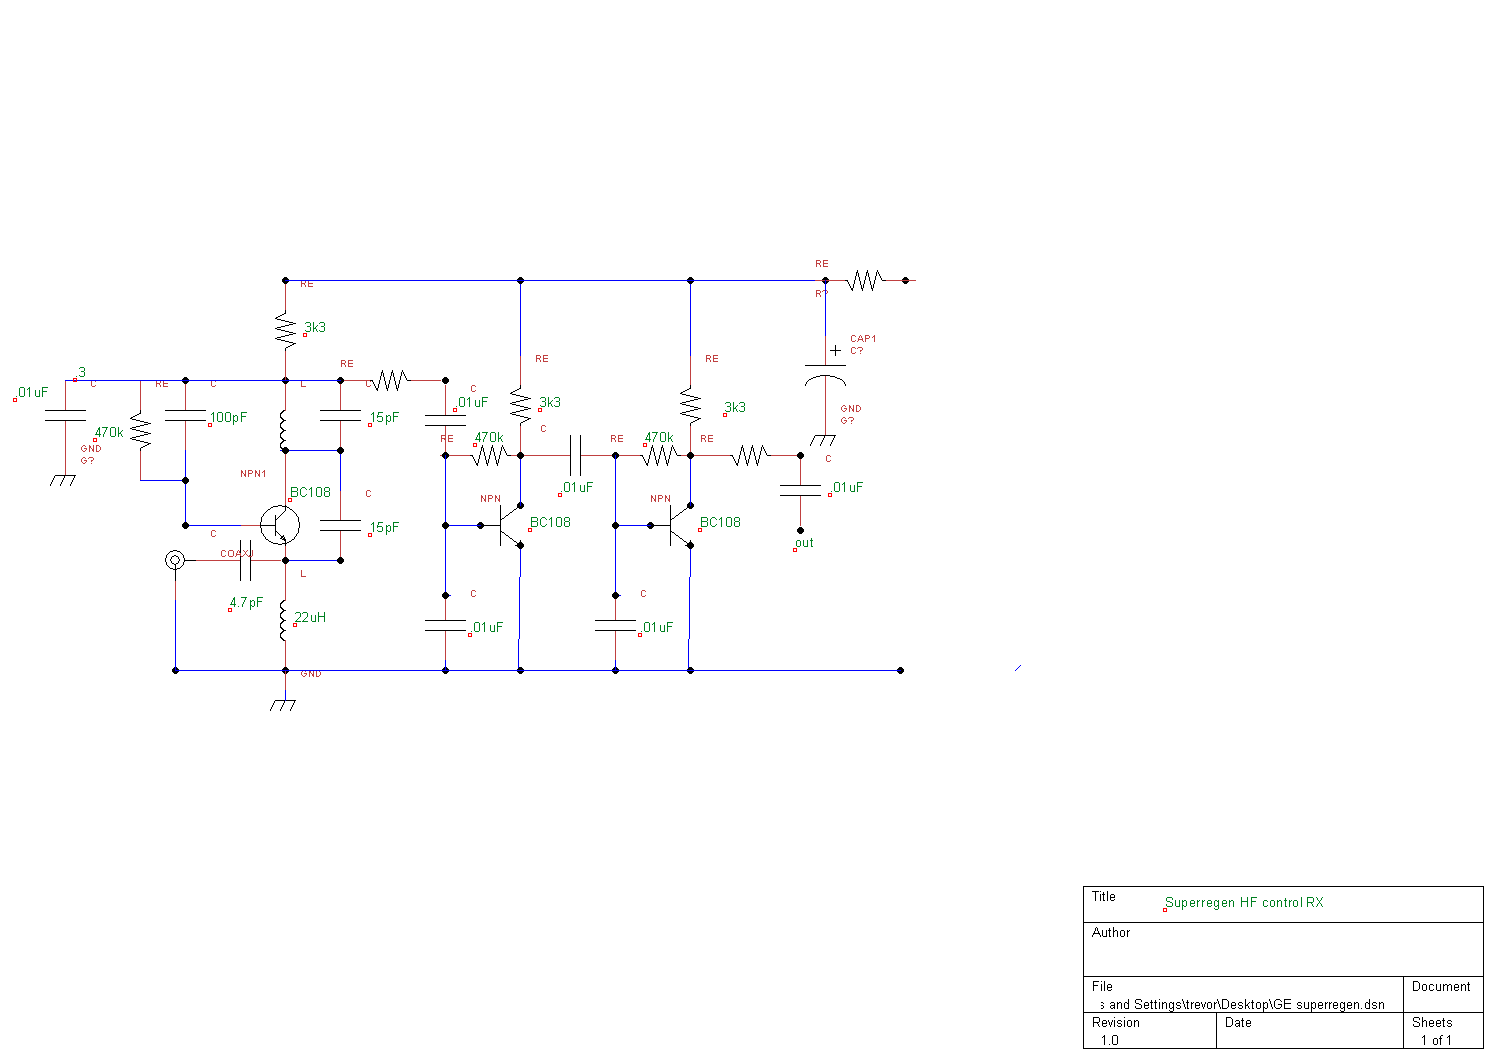 Electronic Circuit Schematics Usb Camera Diagram Amplifiercircuit For Superregenerative Receiver Built By Ge Labs